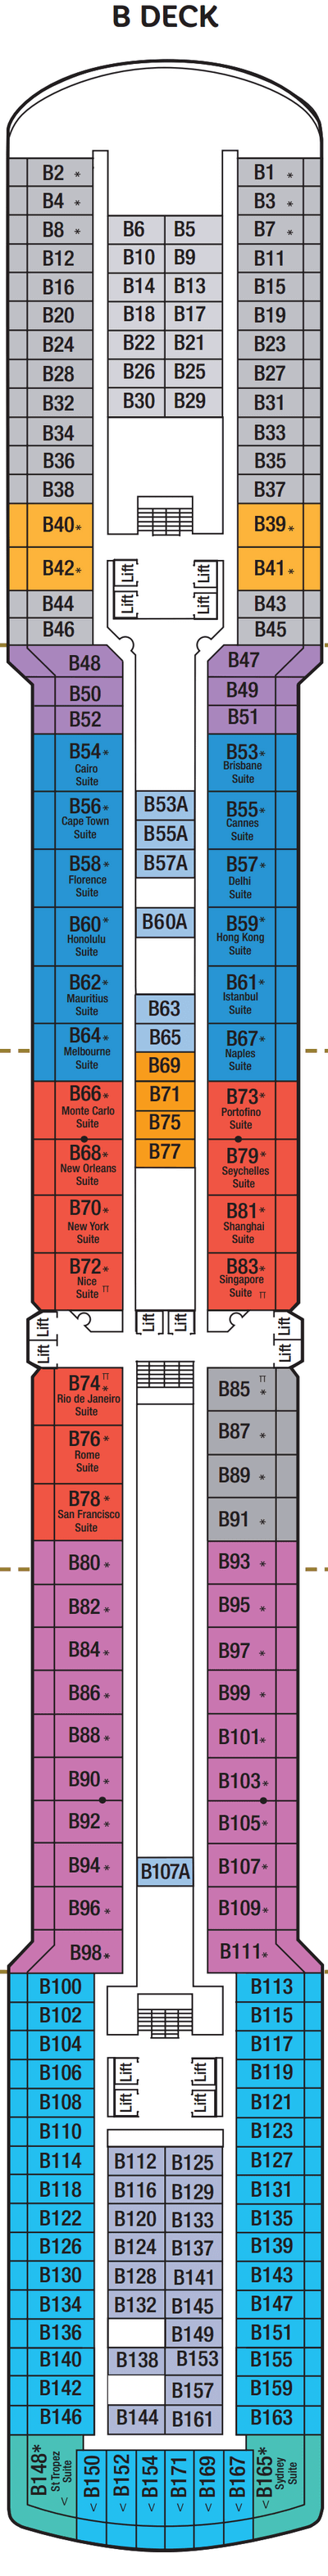 Arcadia B Deck layout